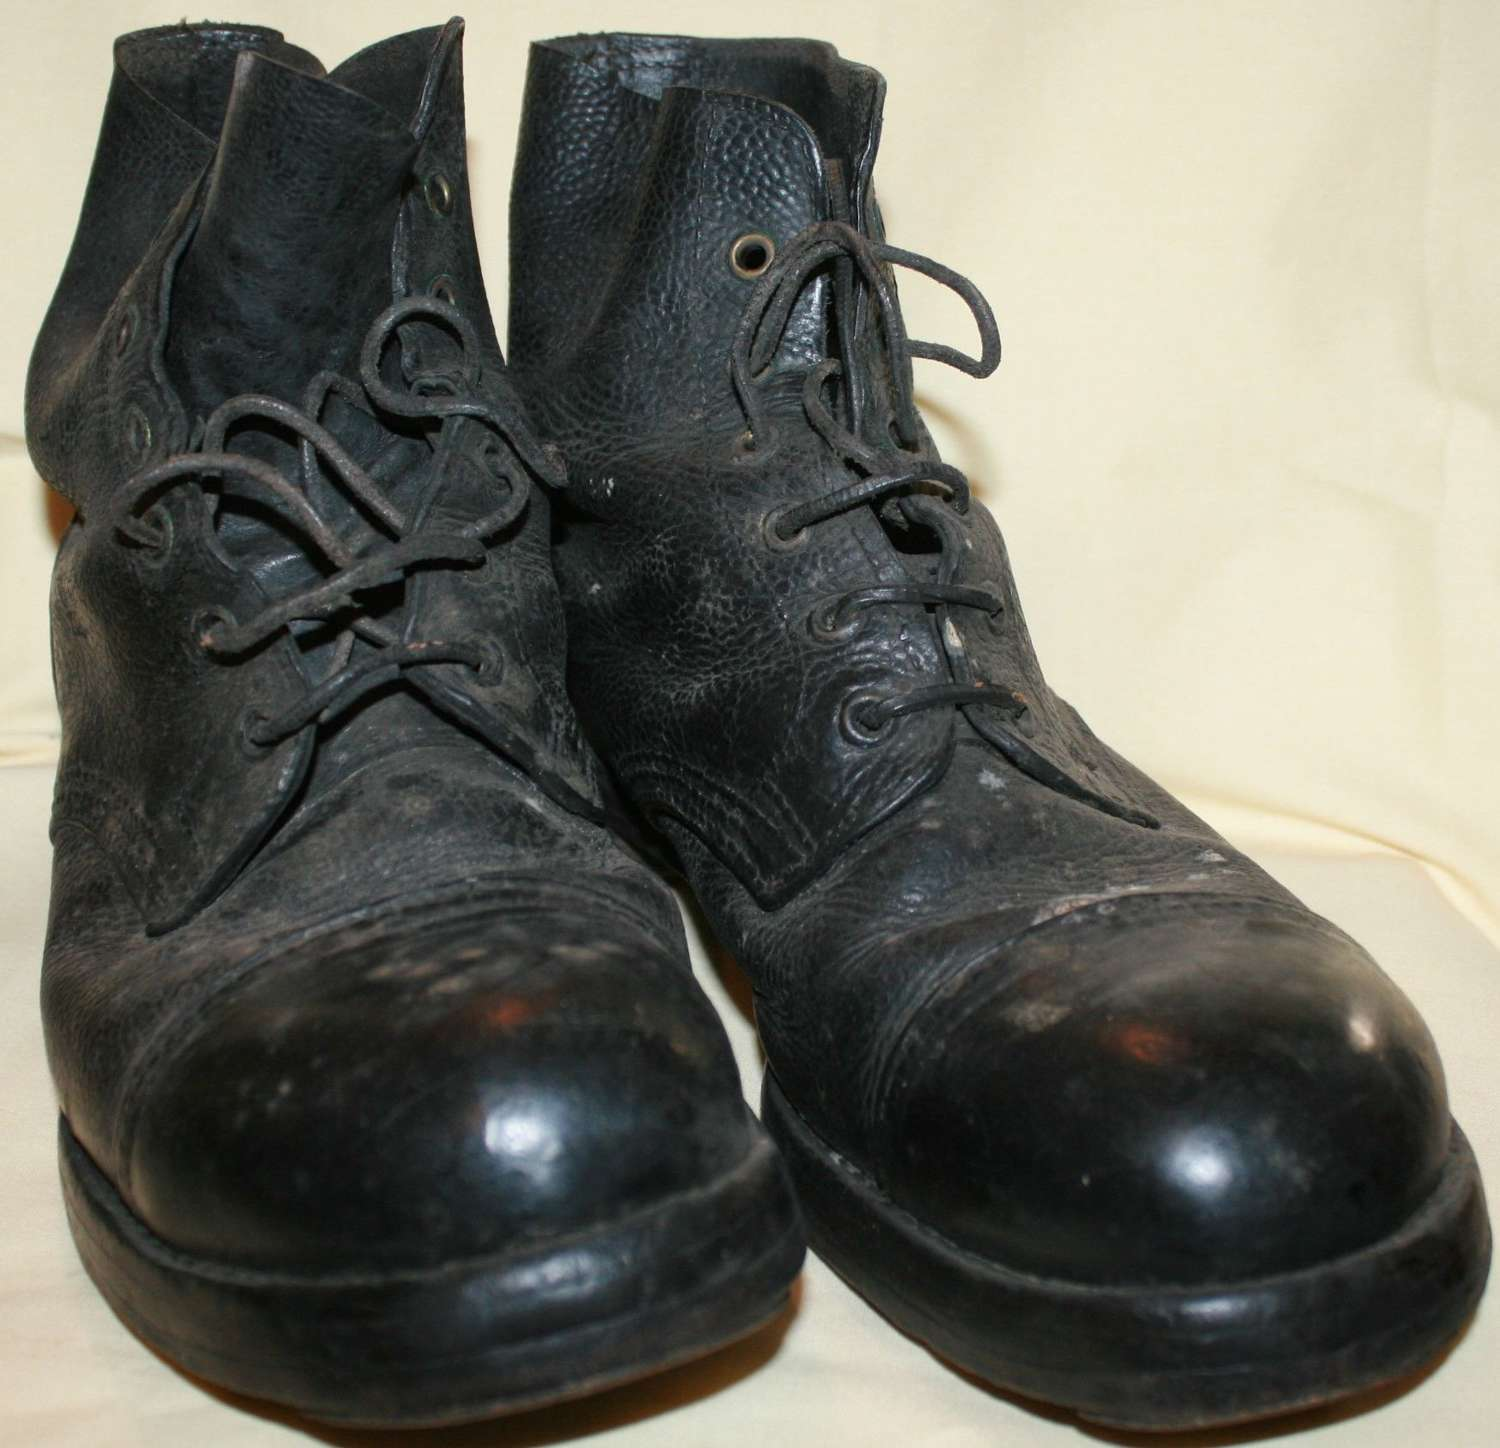 A PAIR OF SIZE 9 1943 DATED HOBNAIL BOOTS